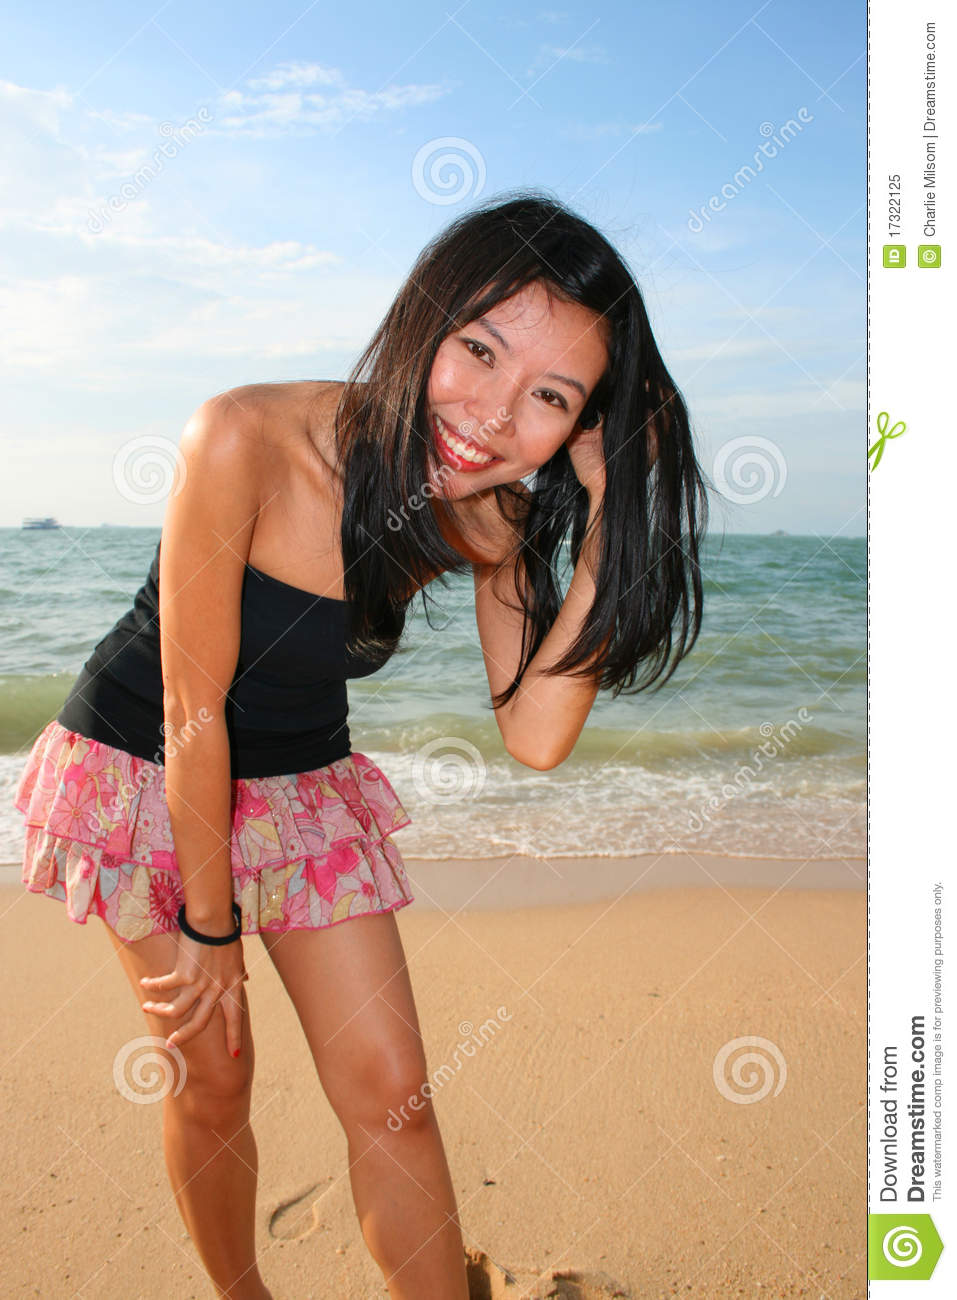 asian girl on a beach in thailand royalty free stock clip art hats off to you clip art hats men 1930